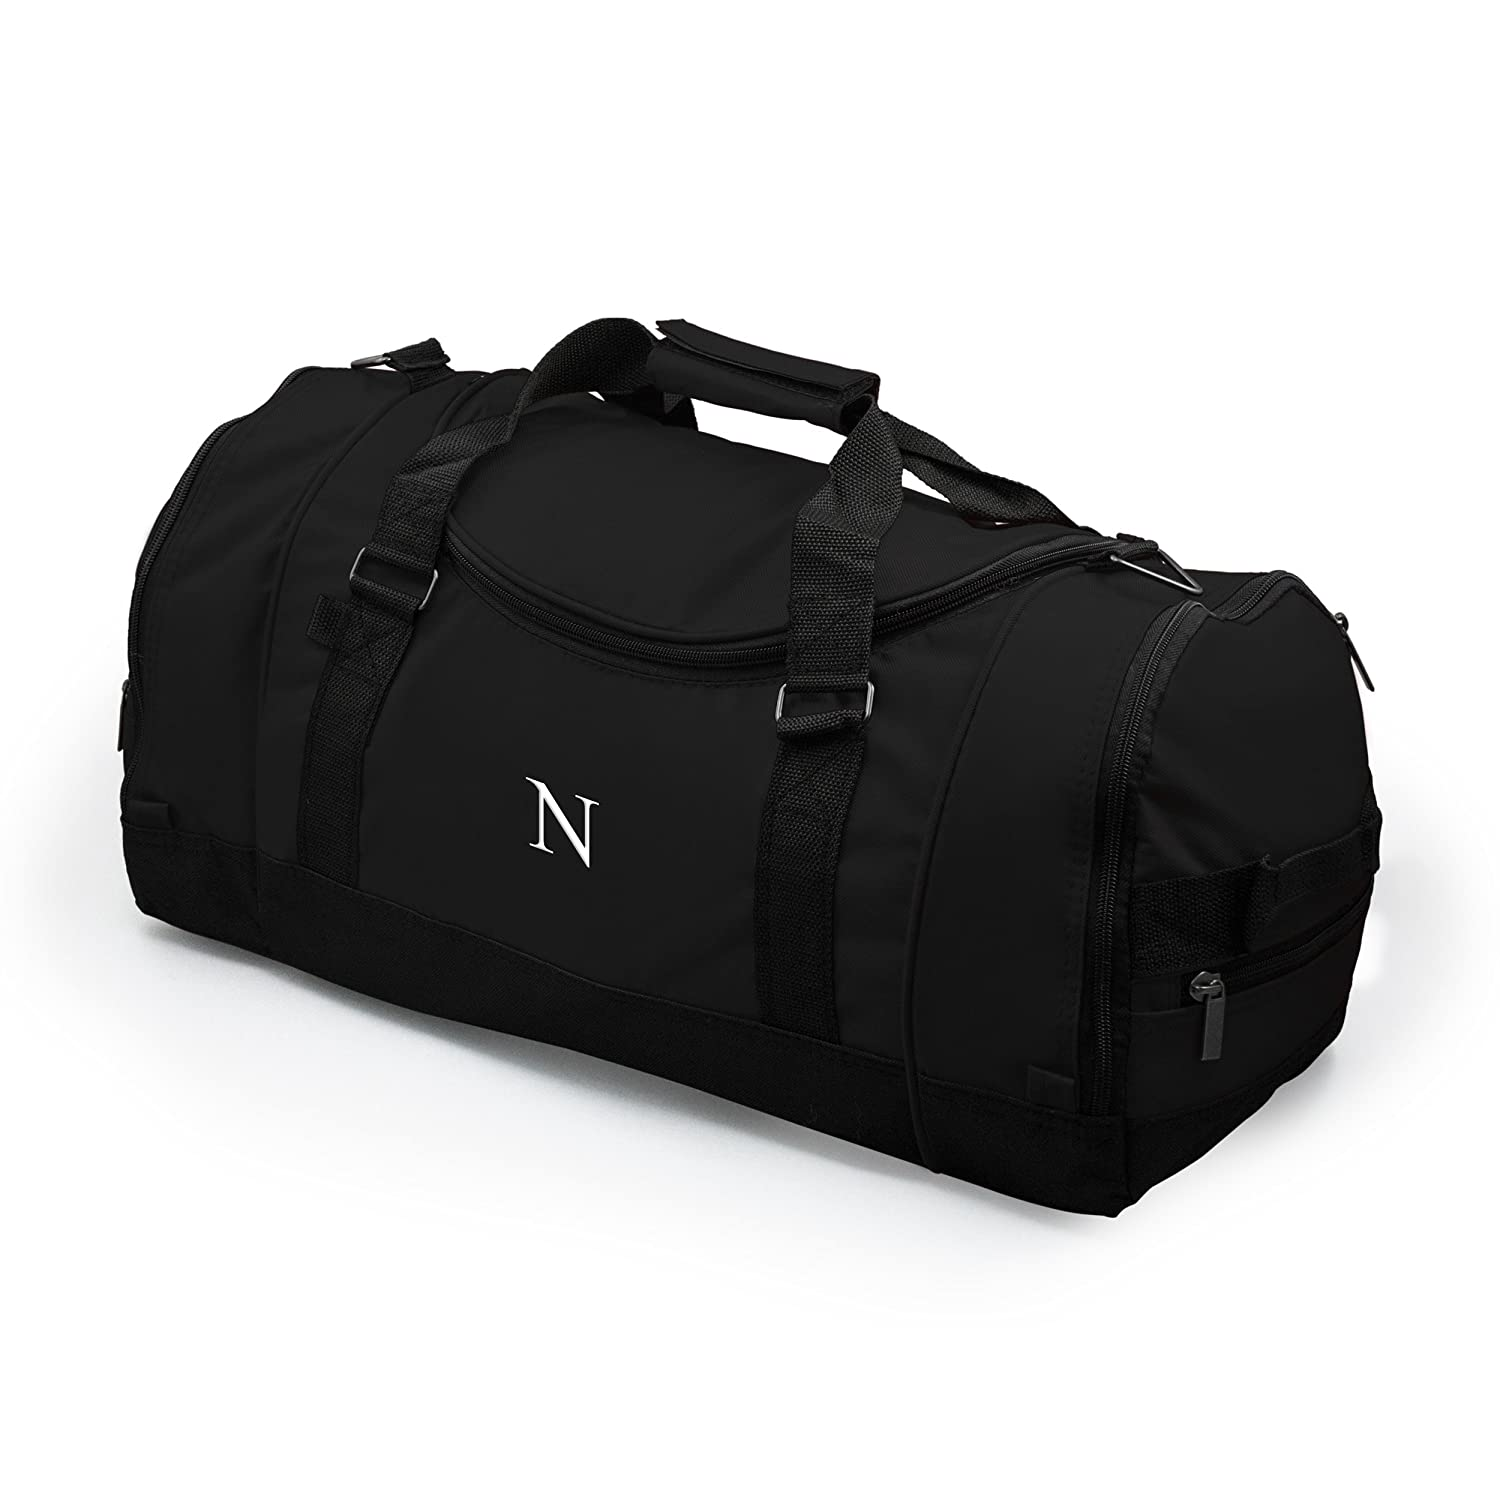 Personalized Deluxe Sports Duffle Bag Black